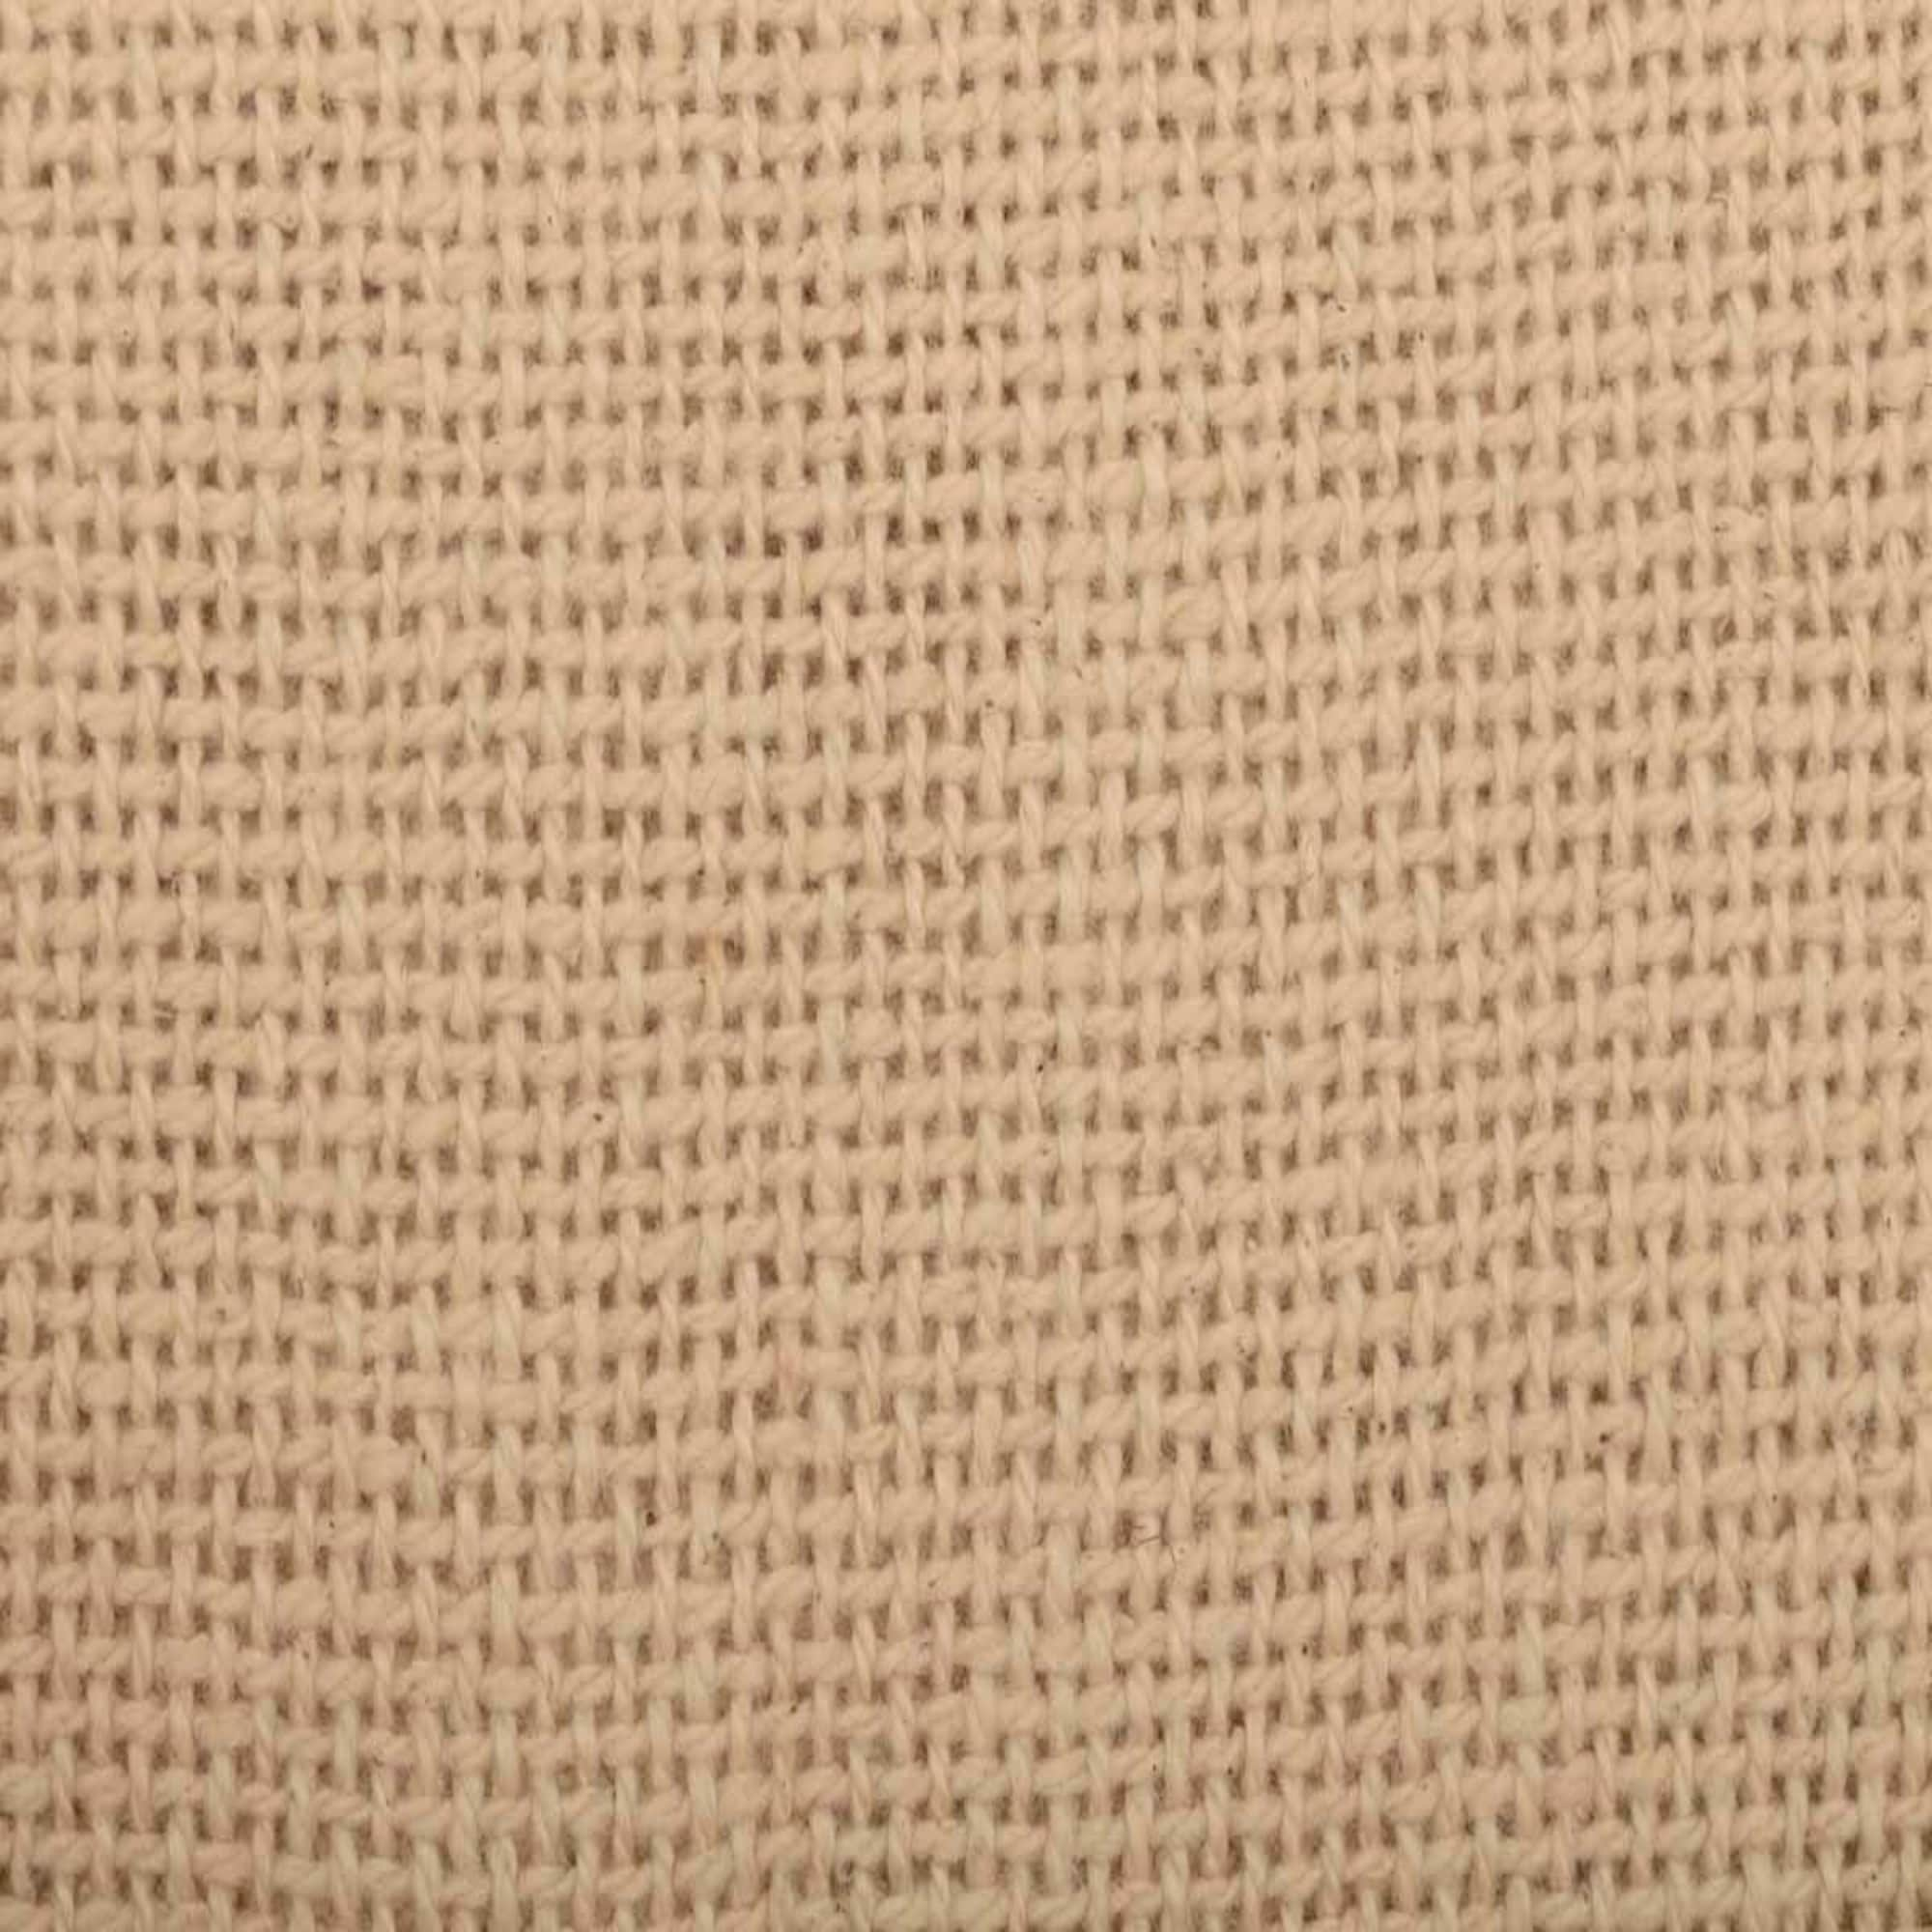 Farmhouse Bedding Vhc Cotton Burlap Bed Skirt Solid Color Gathered On Sale Overstock 27555378